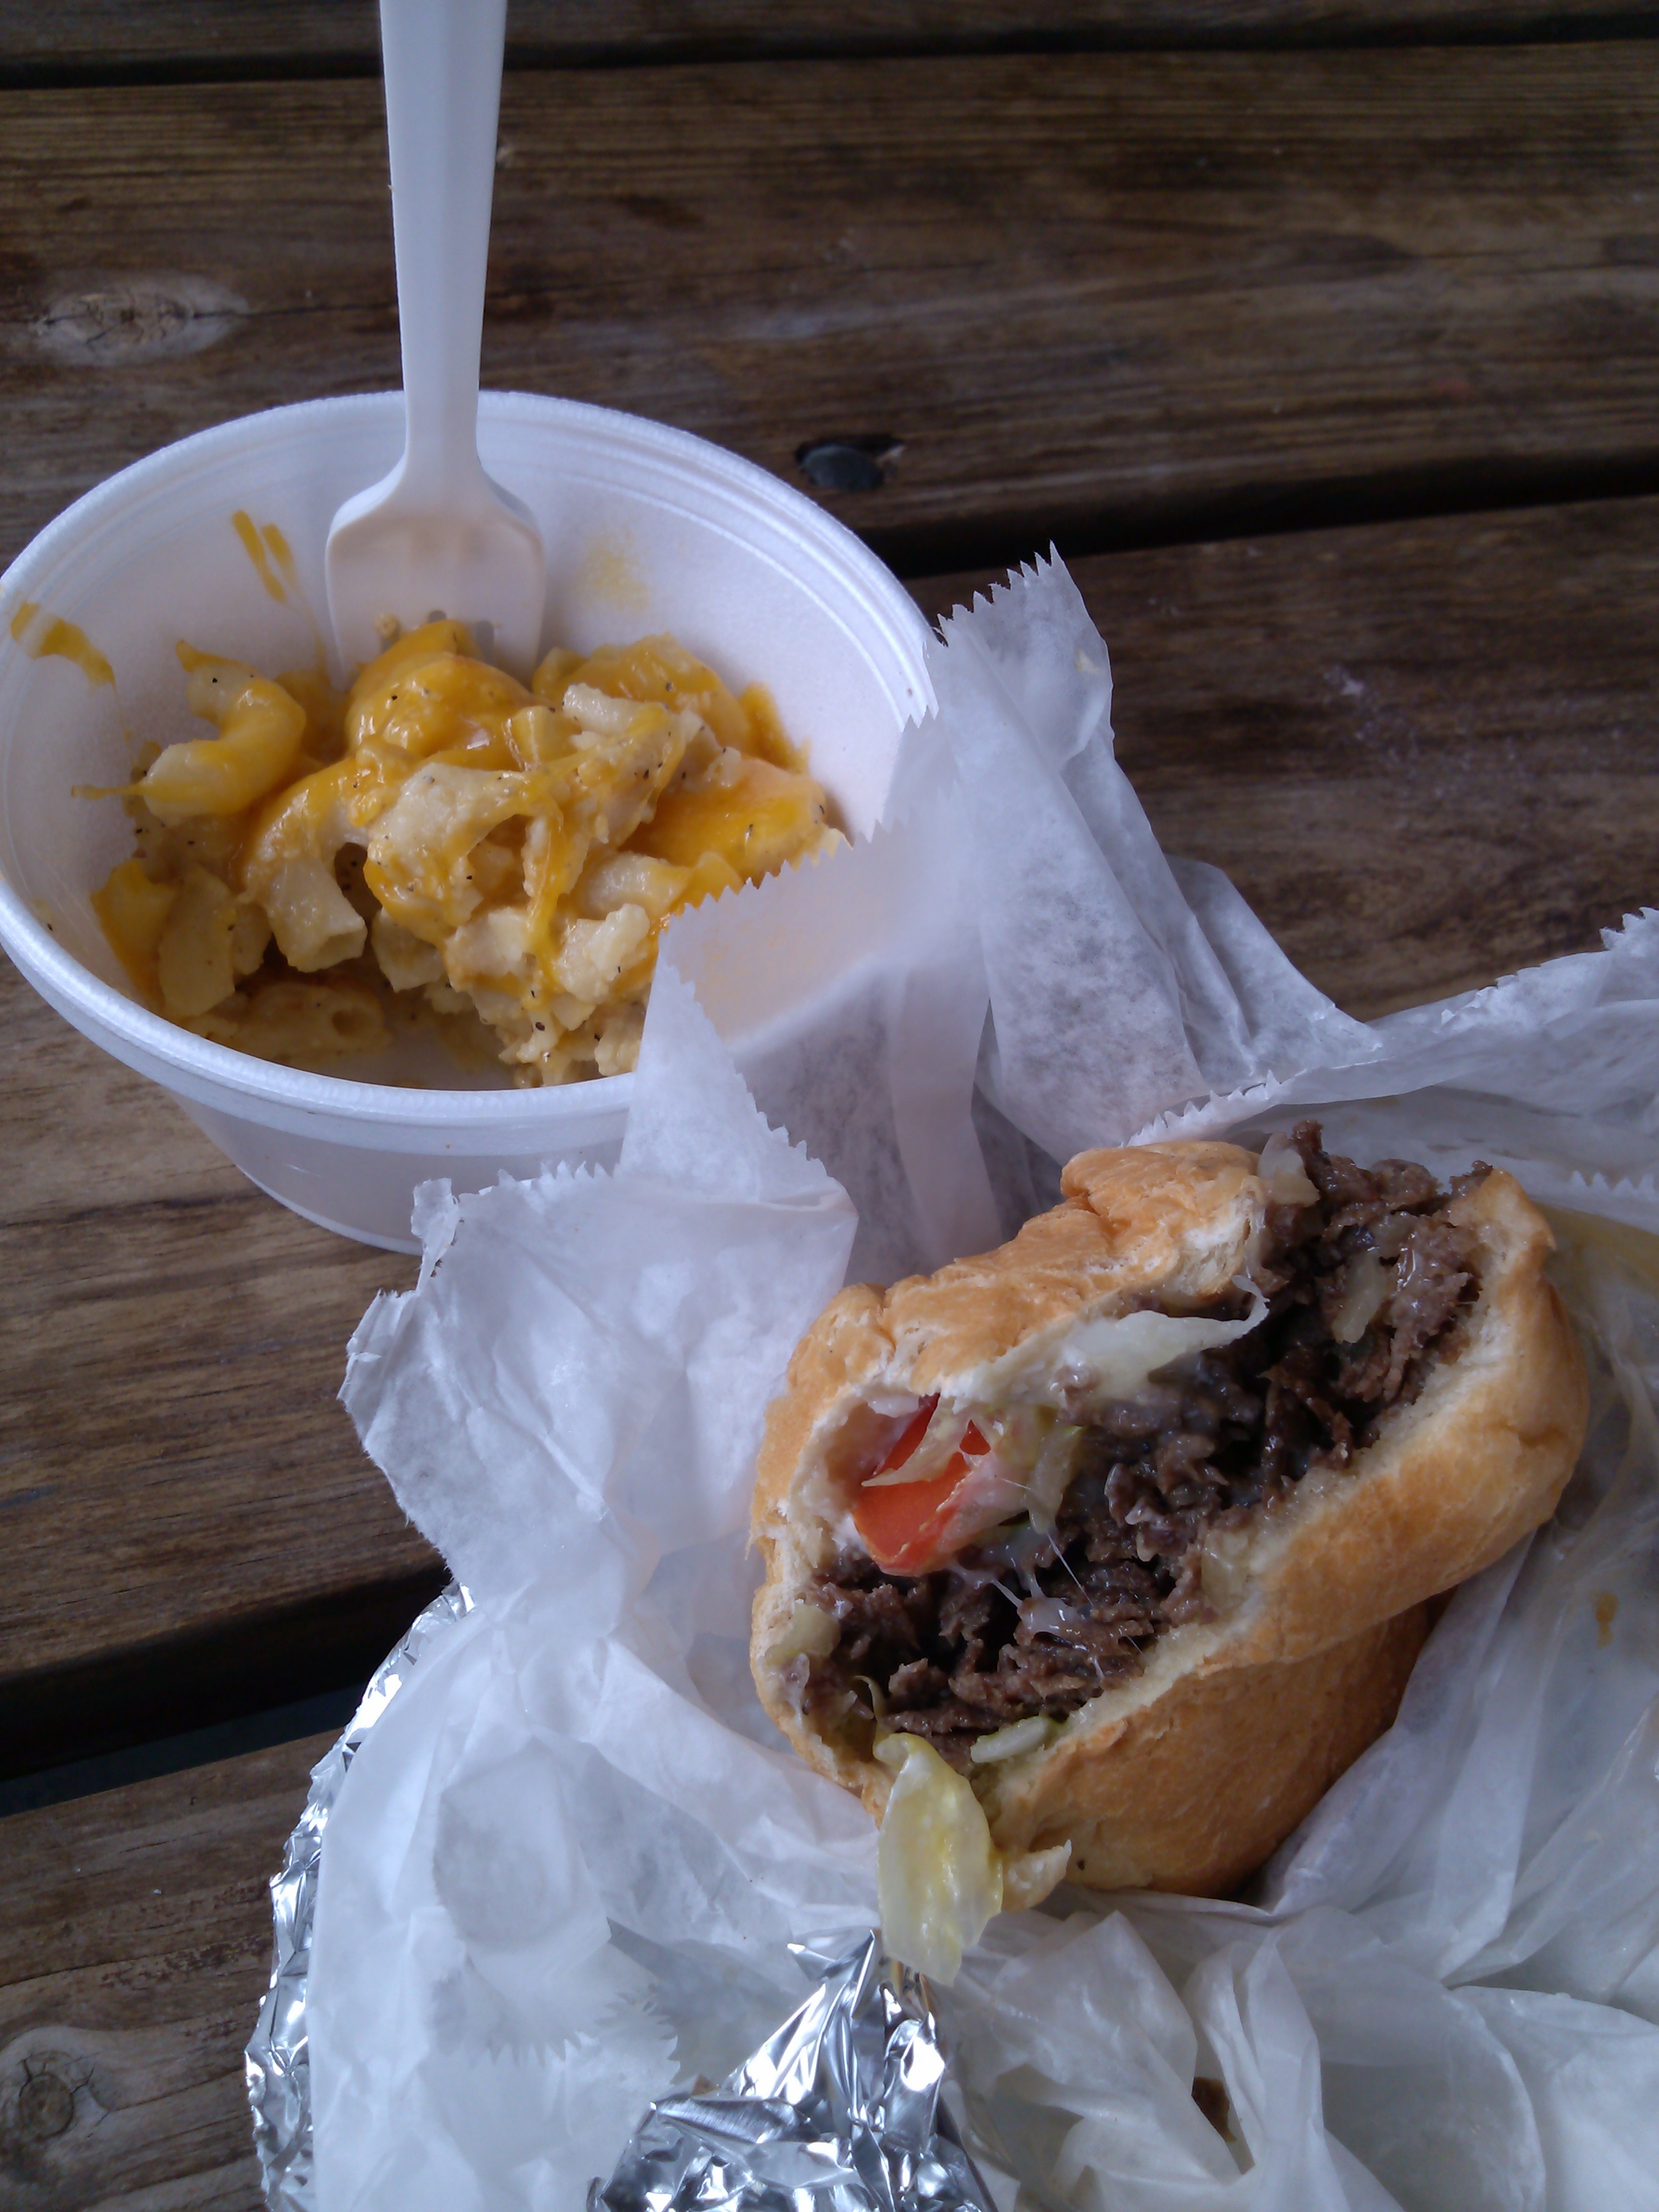 Steak and cheese and mac and cheese